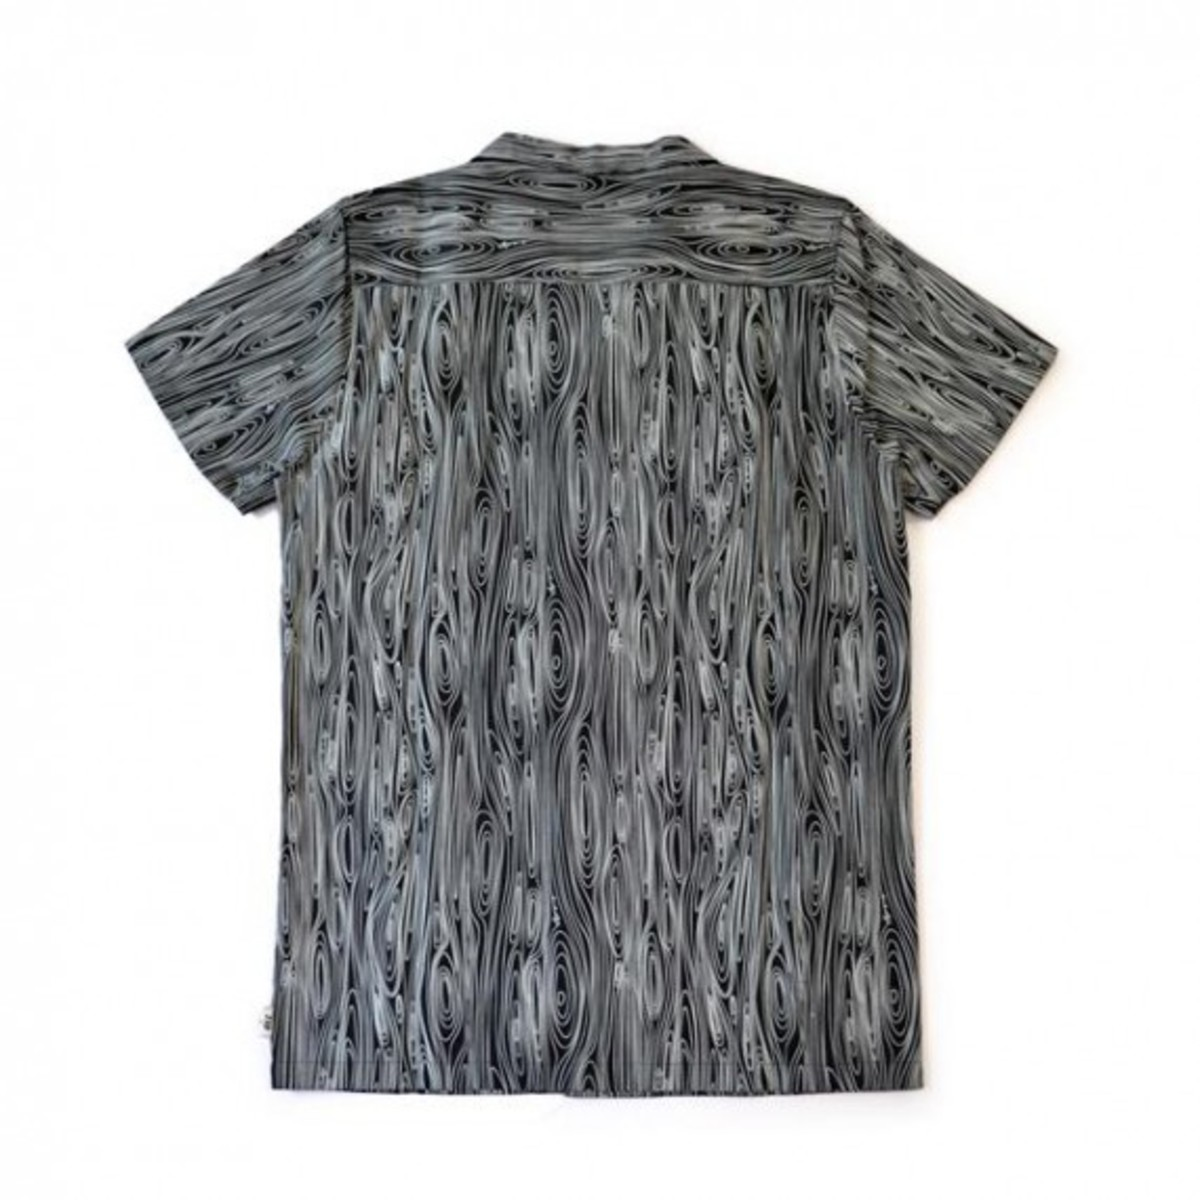 Wood Shirt Black 2